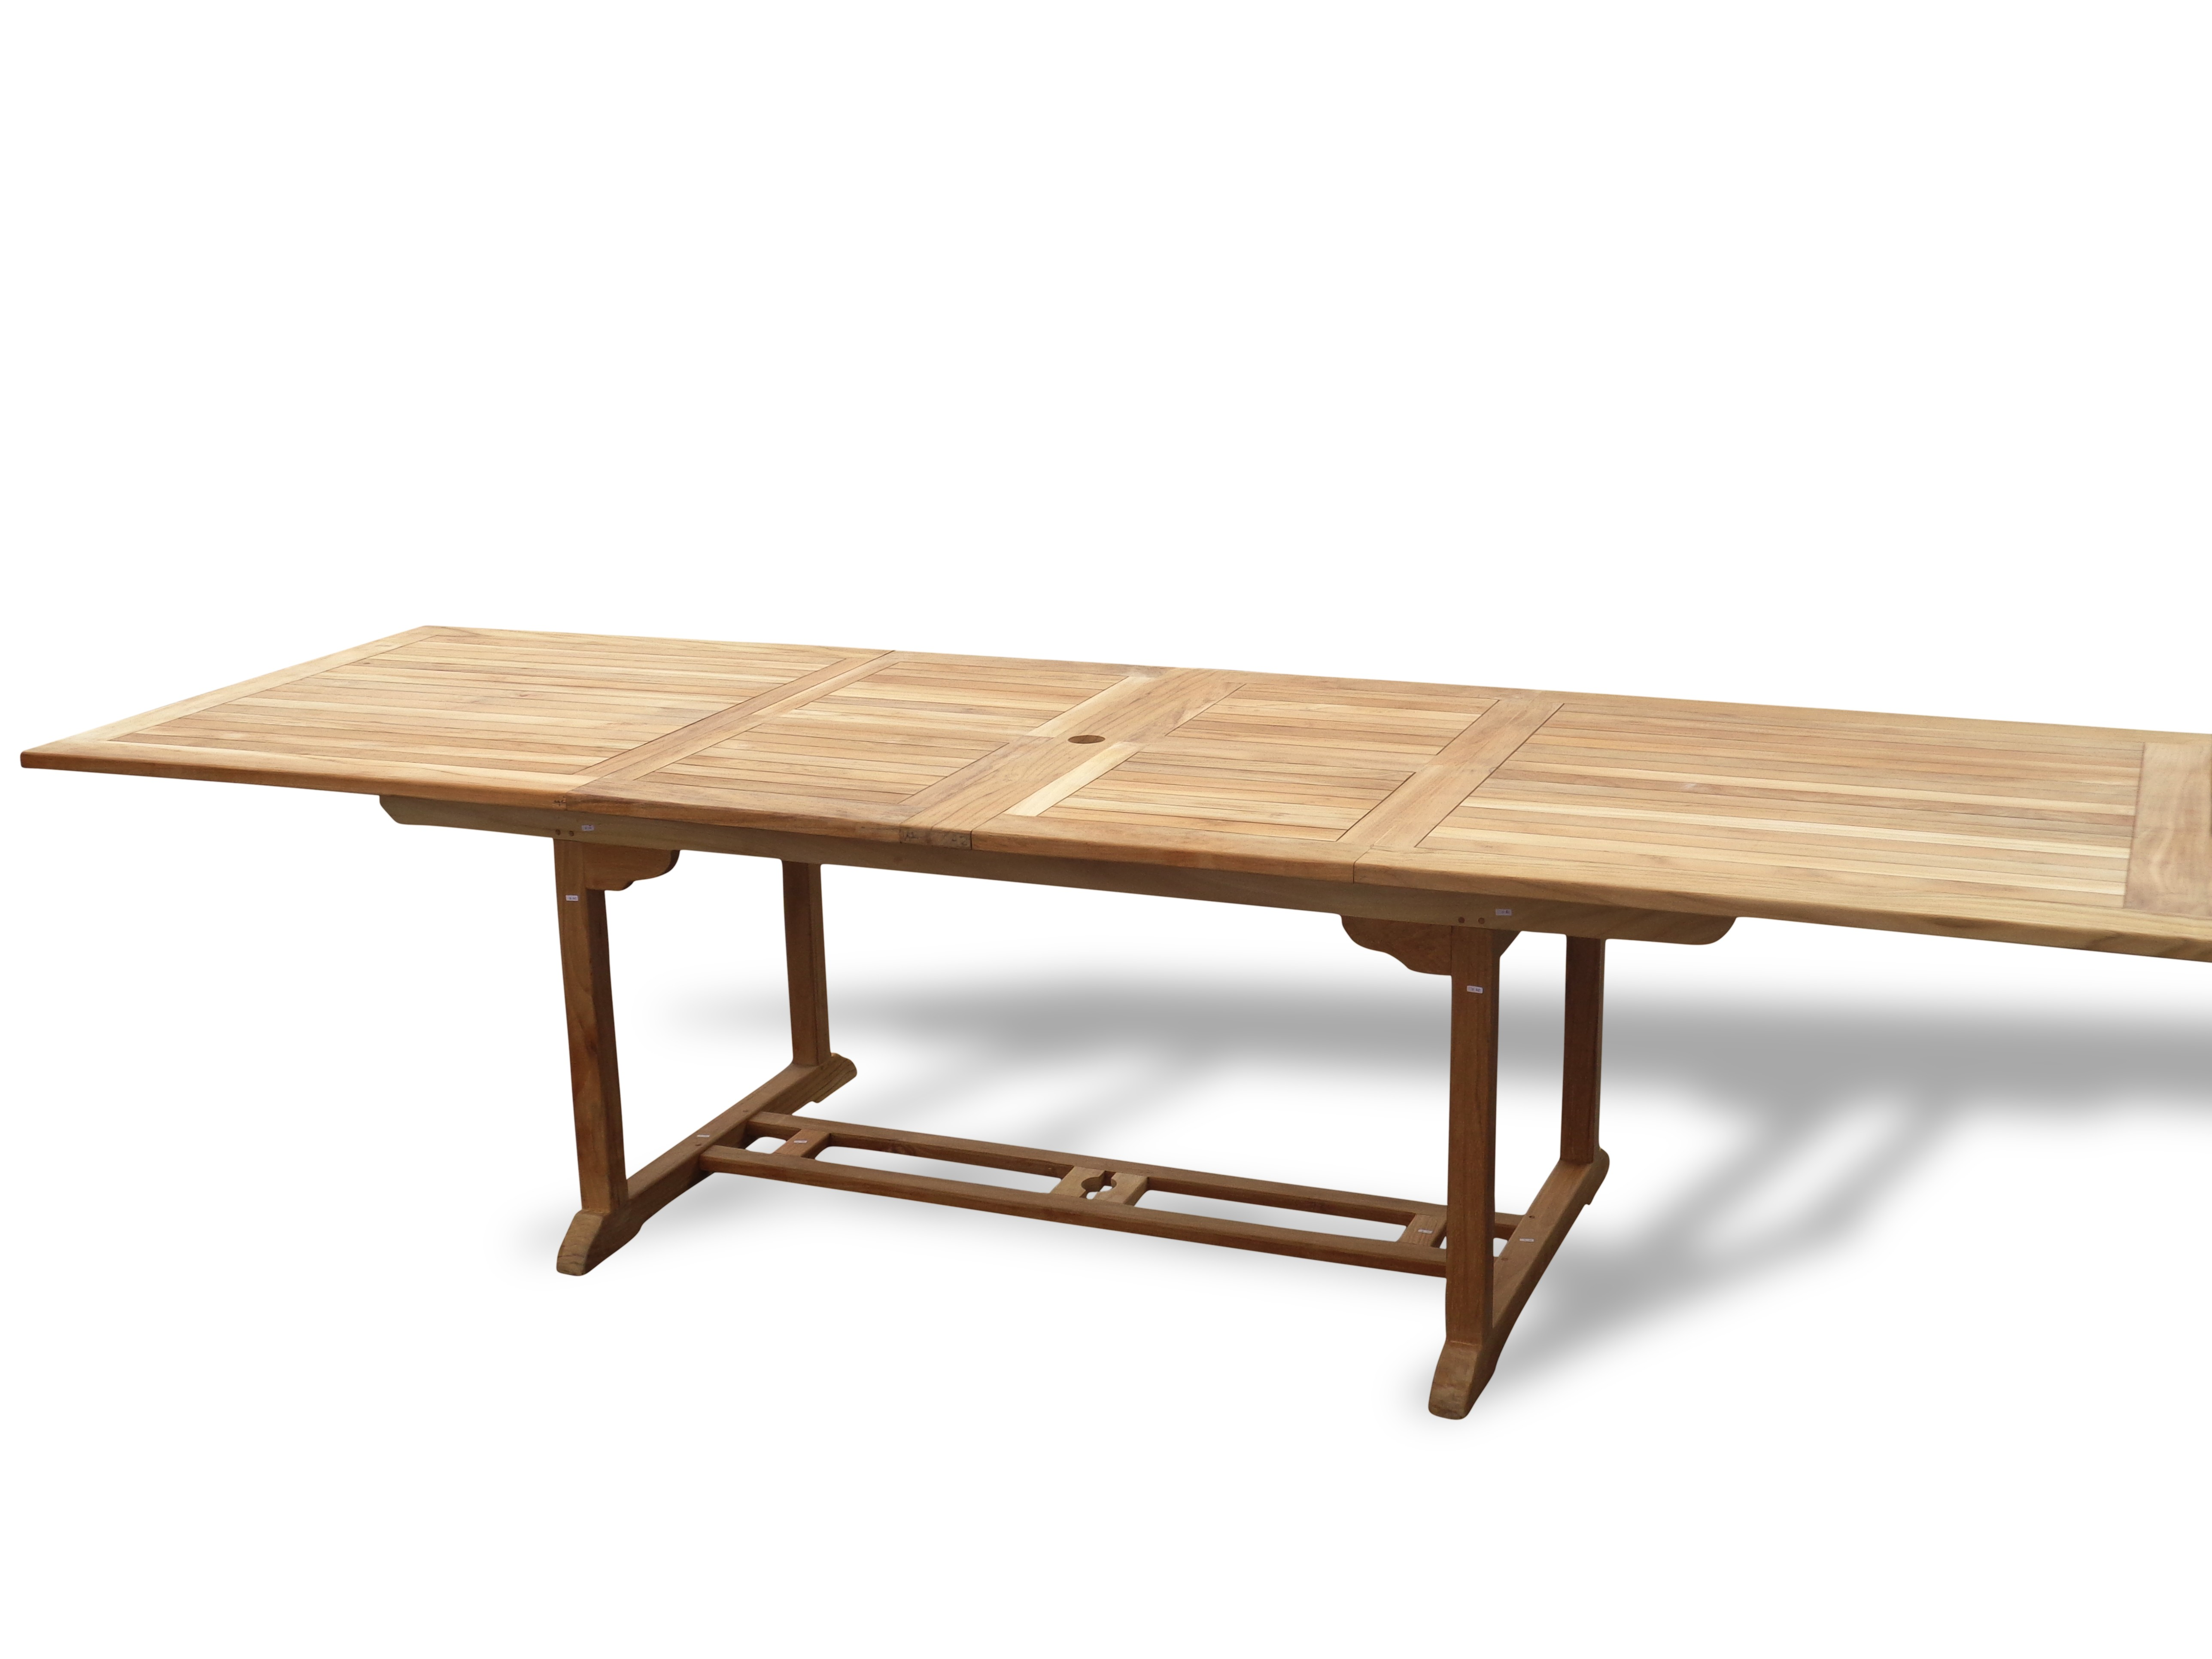 "Buckingham 138"" x 39"" Rectangular Double Leaf Extension Table...Seats 16 Adults....makes 3 Different Size Tables"